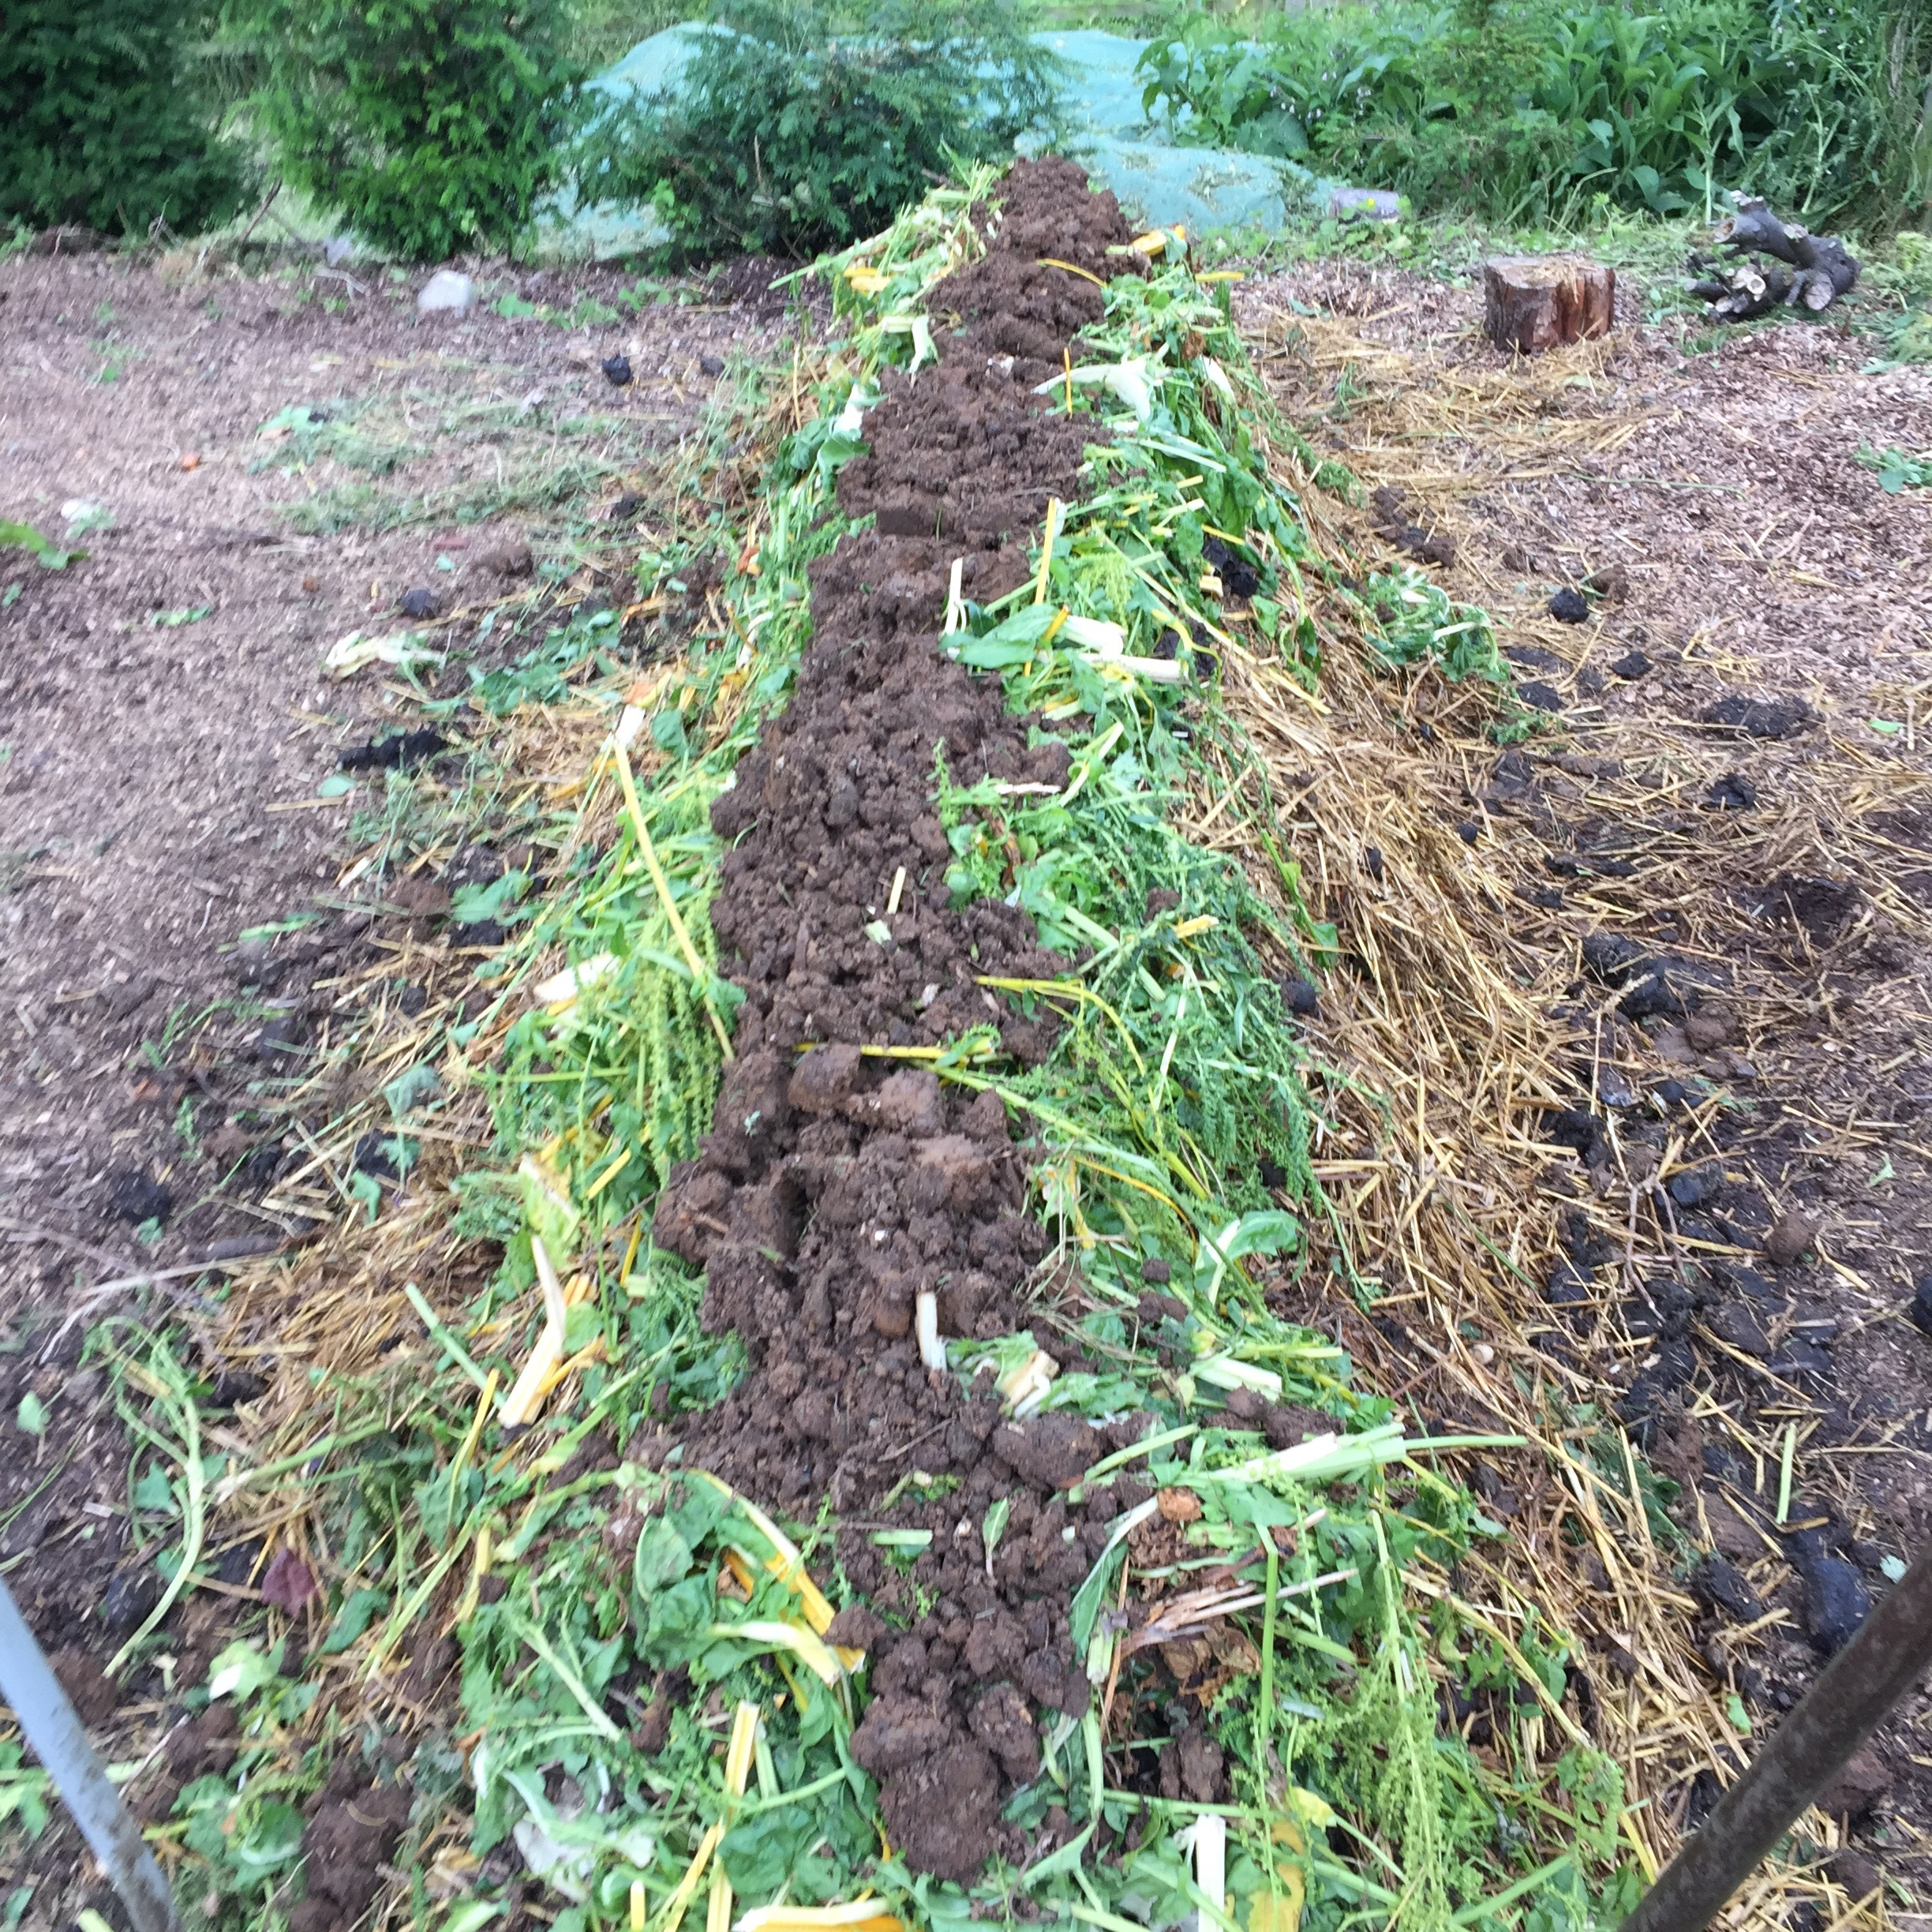 D. Layer of Fresh Manure